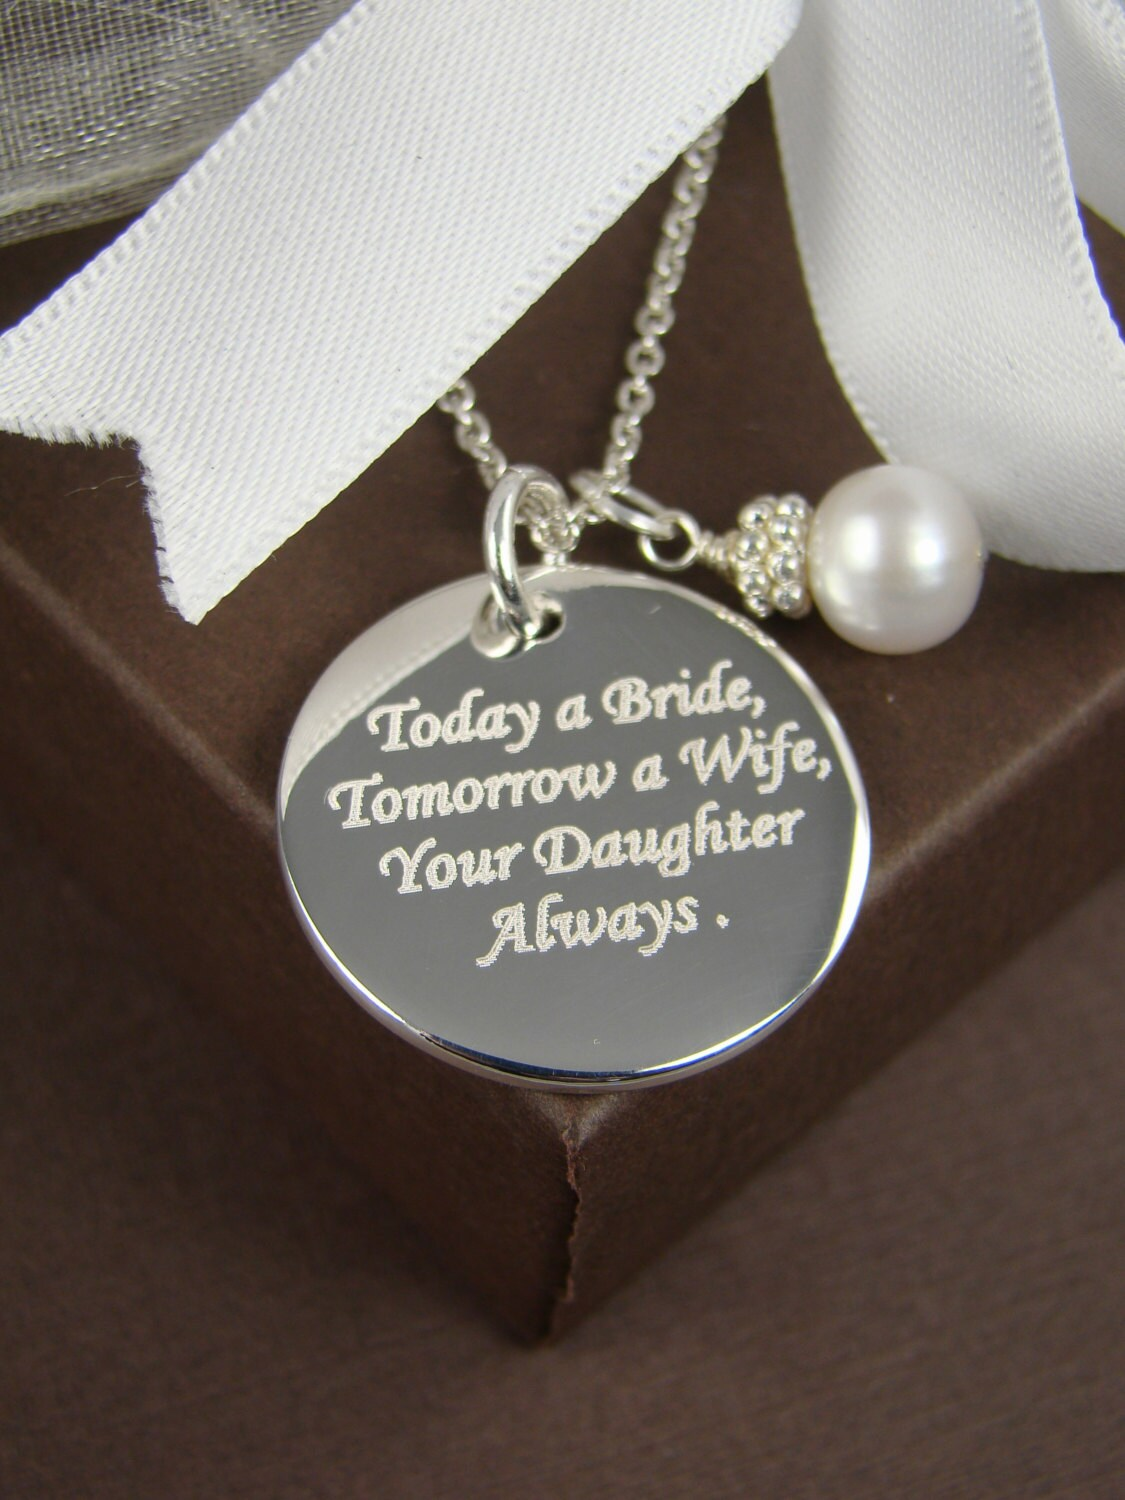 Best Wedding Gifts For Mother Of The Bride : Wedding Gift for Mother of the Bride Personalized Engraved